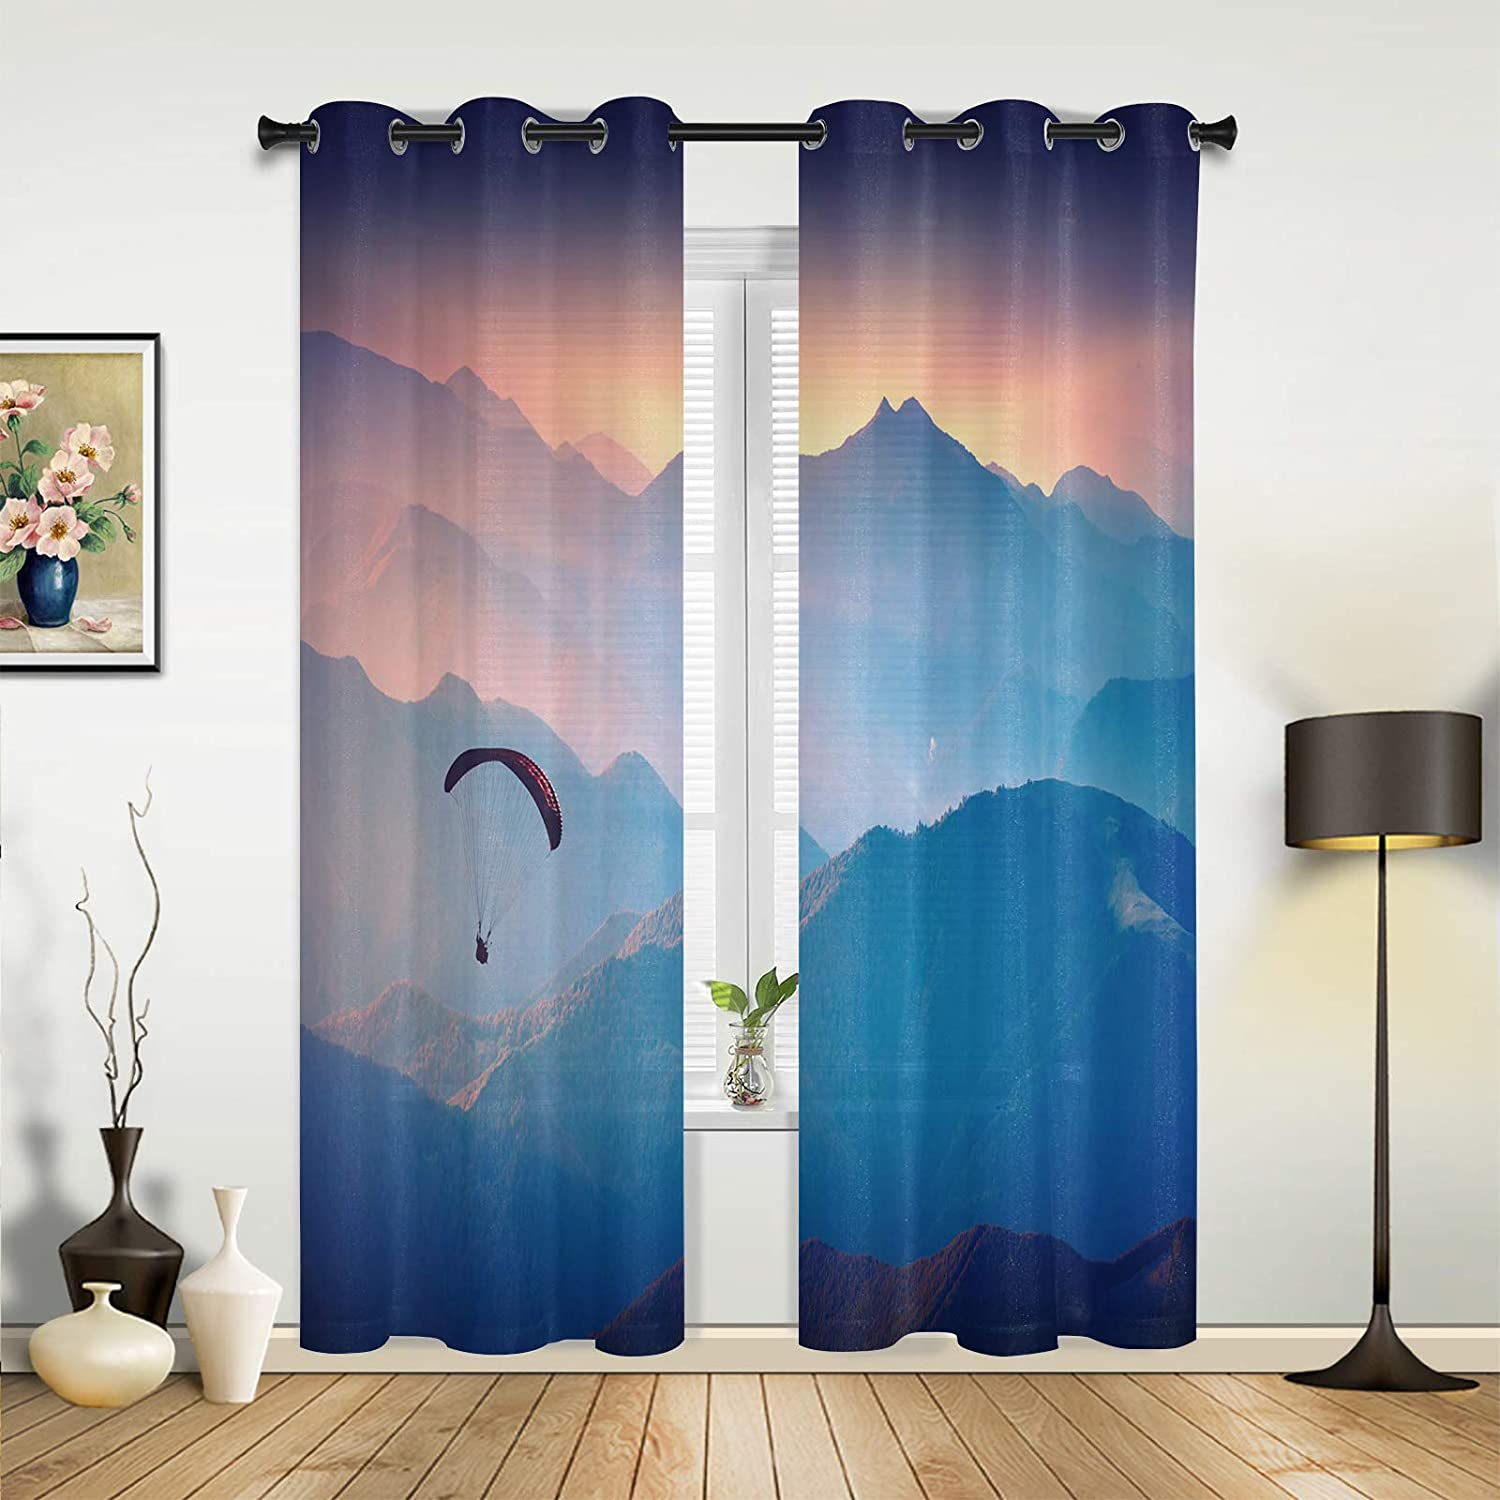 Beauty Decor Window Sheer Curtains overseas Portland Mall Living Bedroom Parag Room for